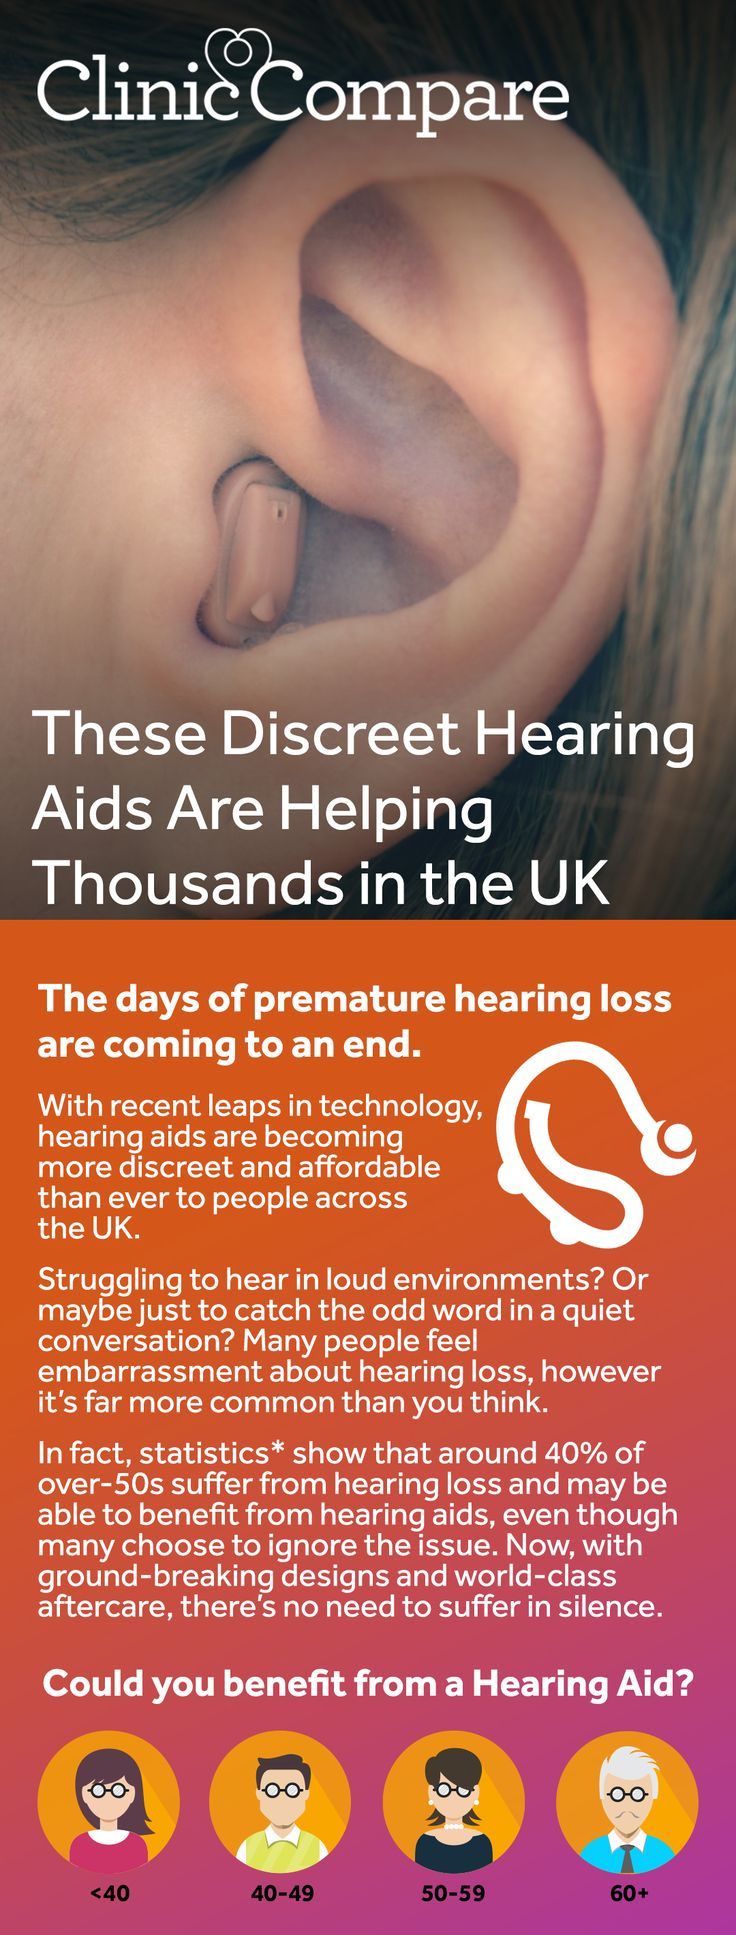 The days of premature hearing loss are coming to an end with recent leaps in